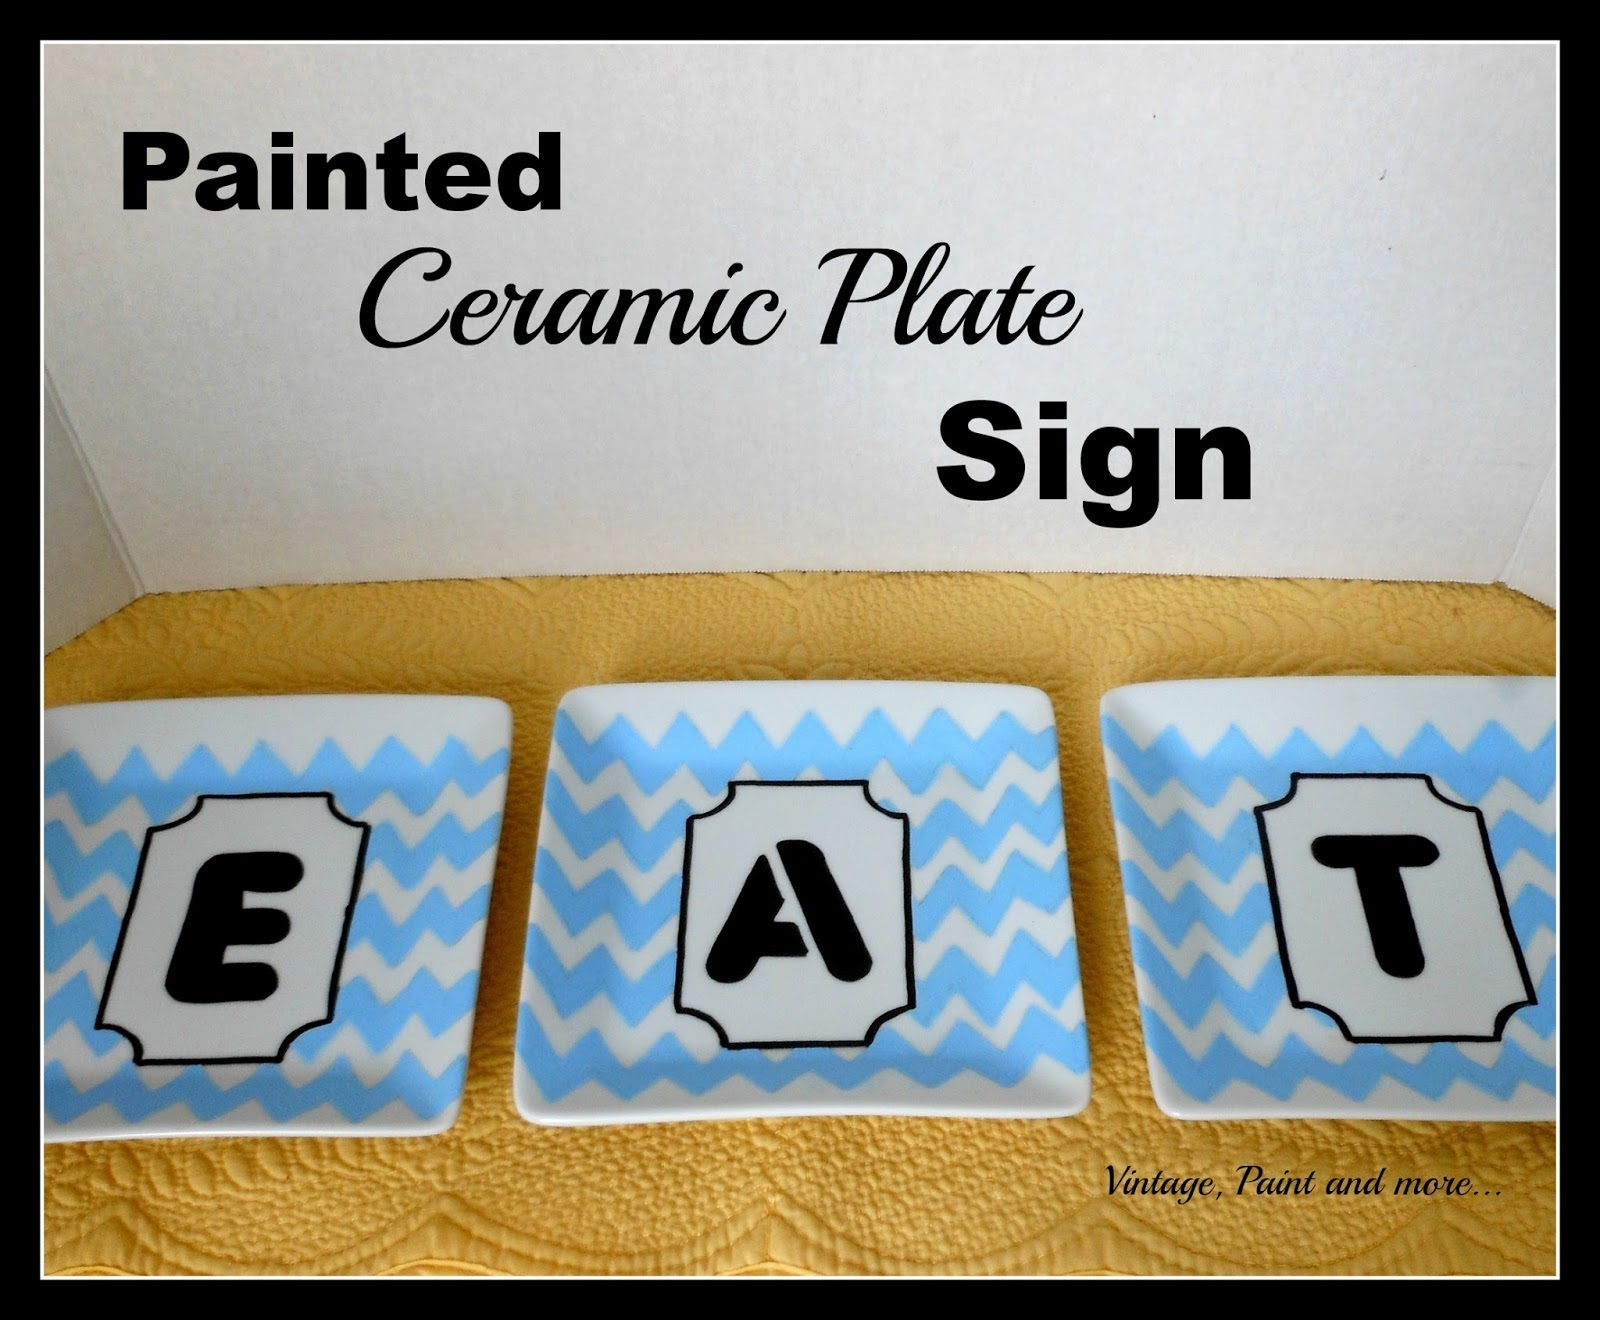 Painted Ceramic Plate Sign | Vintage Paint and more.  sc 1 st  Vintage Paint and more... & Painted Ceramic Plate Sign | Vintage Paint and more...